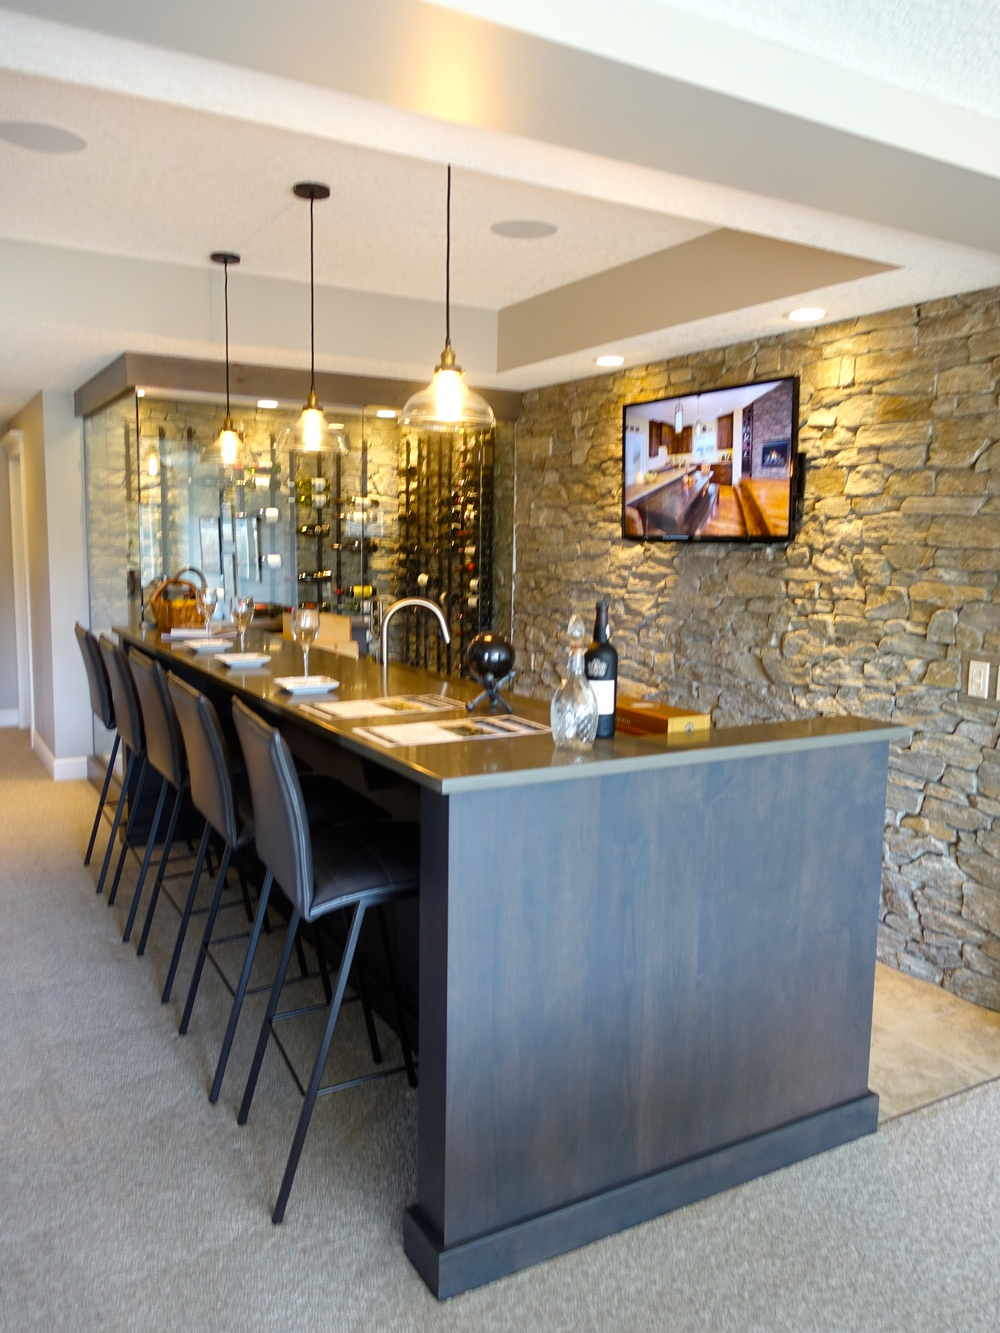 Enjoy your private wine cellar and tasting bar with friends.